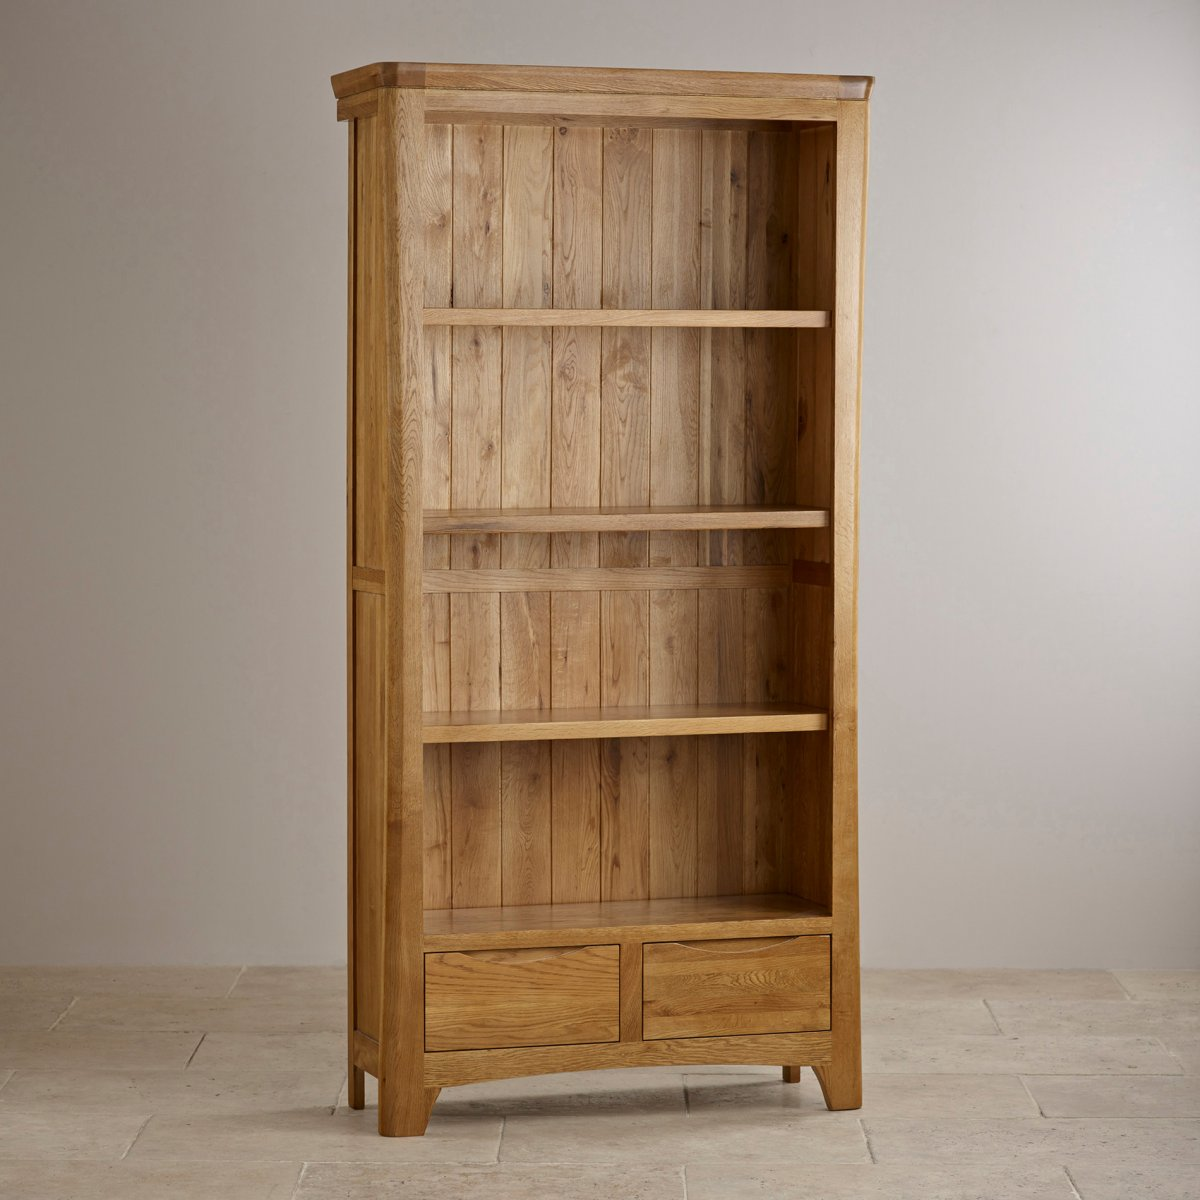 Orrick tall bookcase solid oak oak furniture land for Solid oak furniture